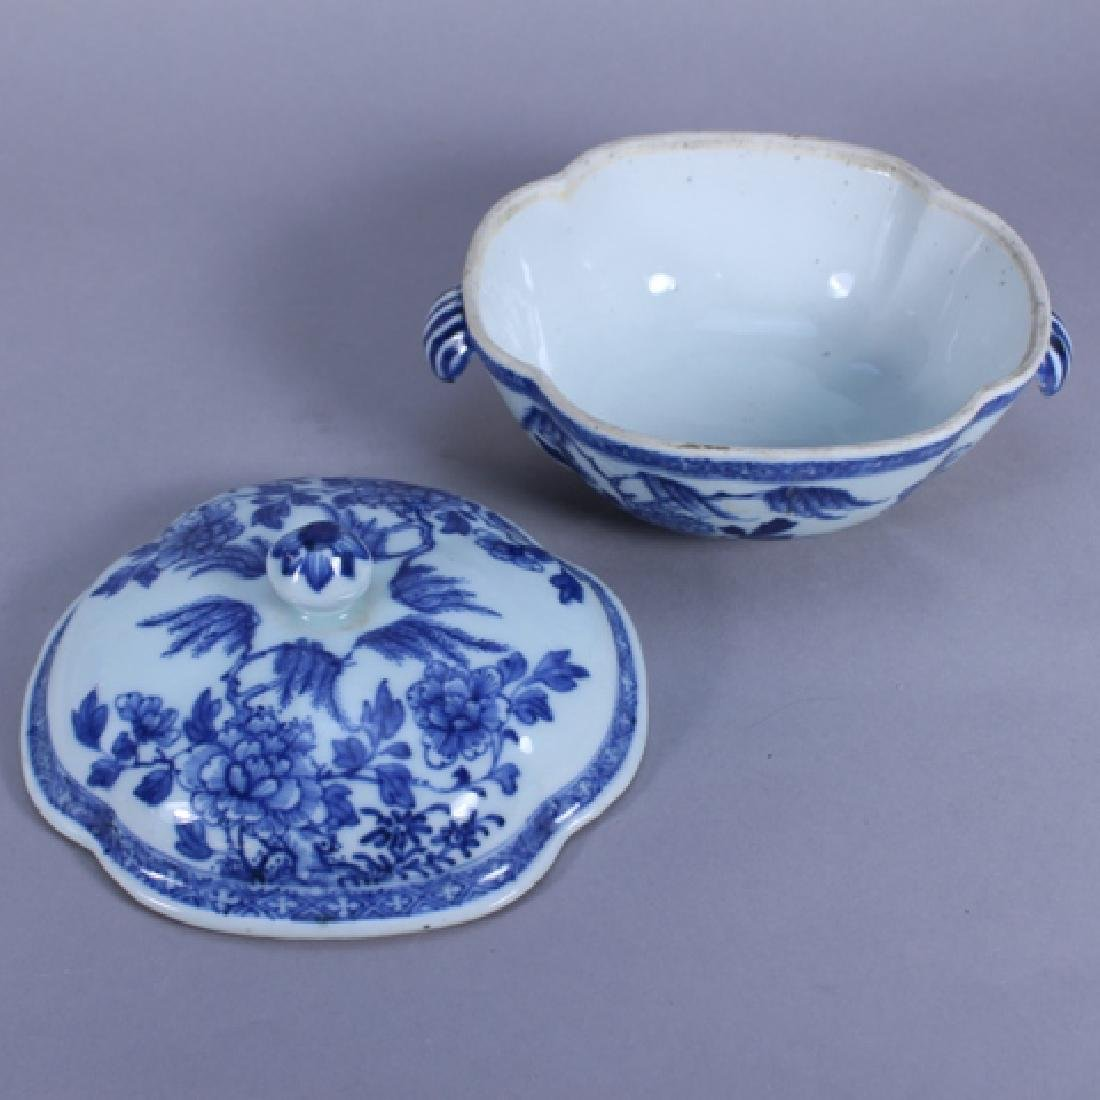 18th C. Chinese Porcelain Covered Bowl & Tray - 4